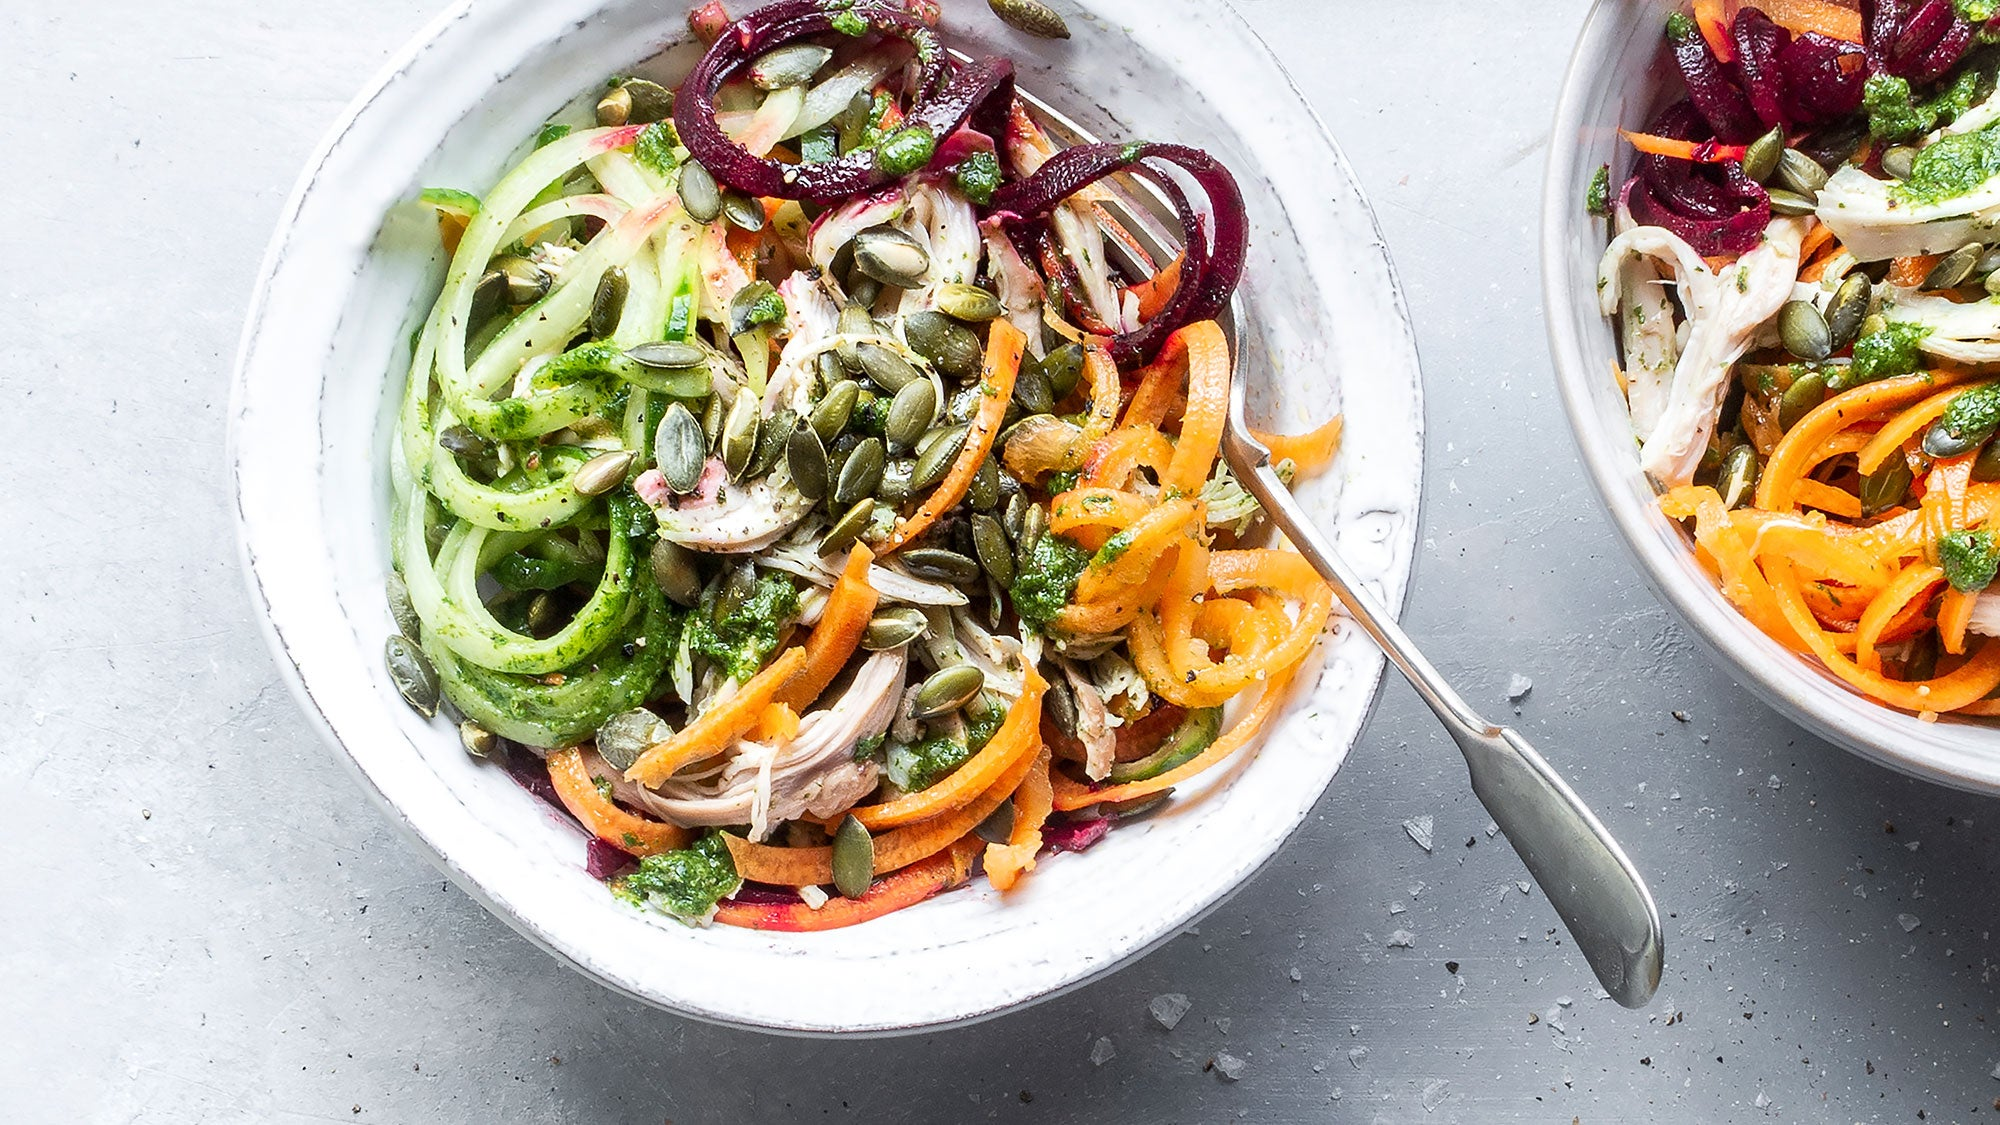 Rainbow Vegetable Salad with Chicken recipe